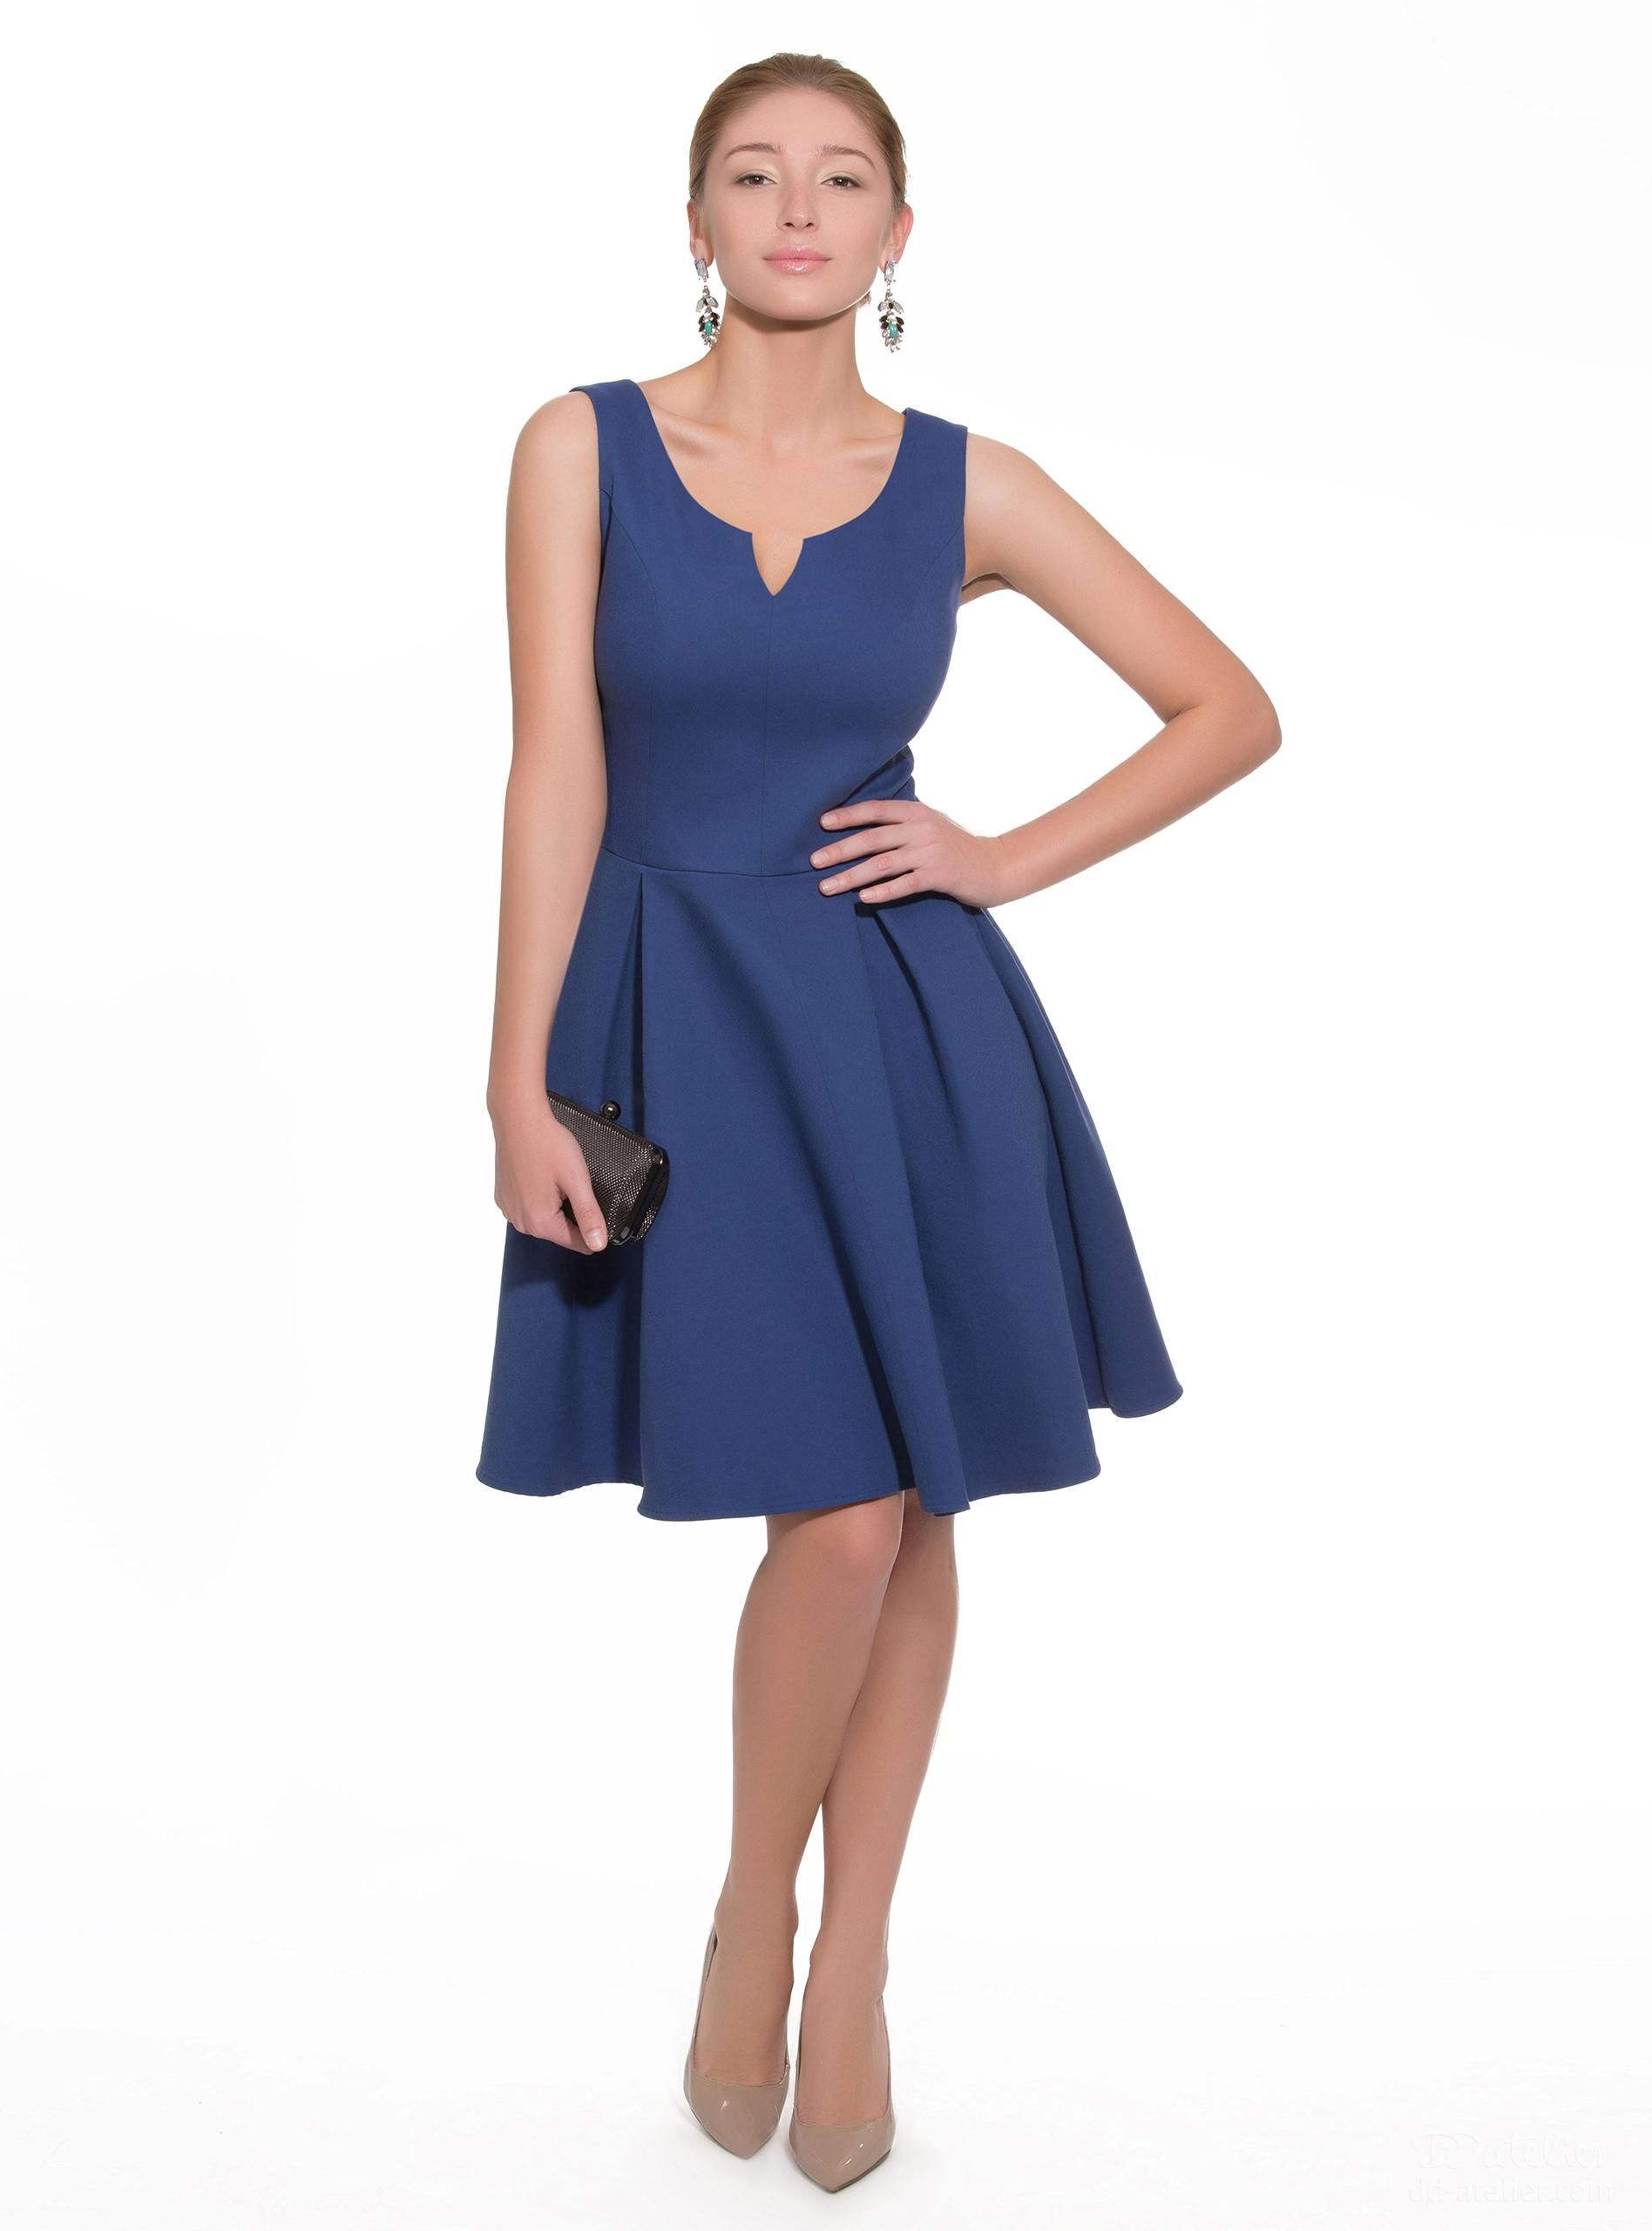 Dress Lia 1-290, in Blue, for a big bust